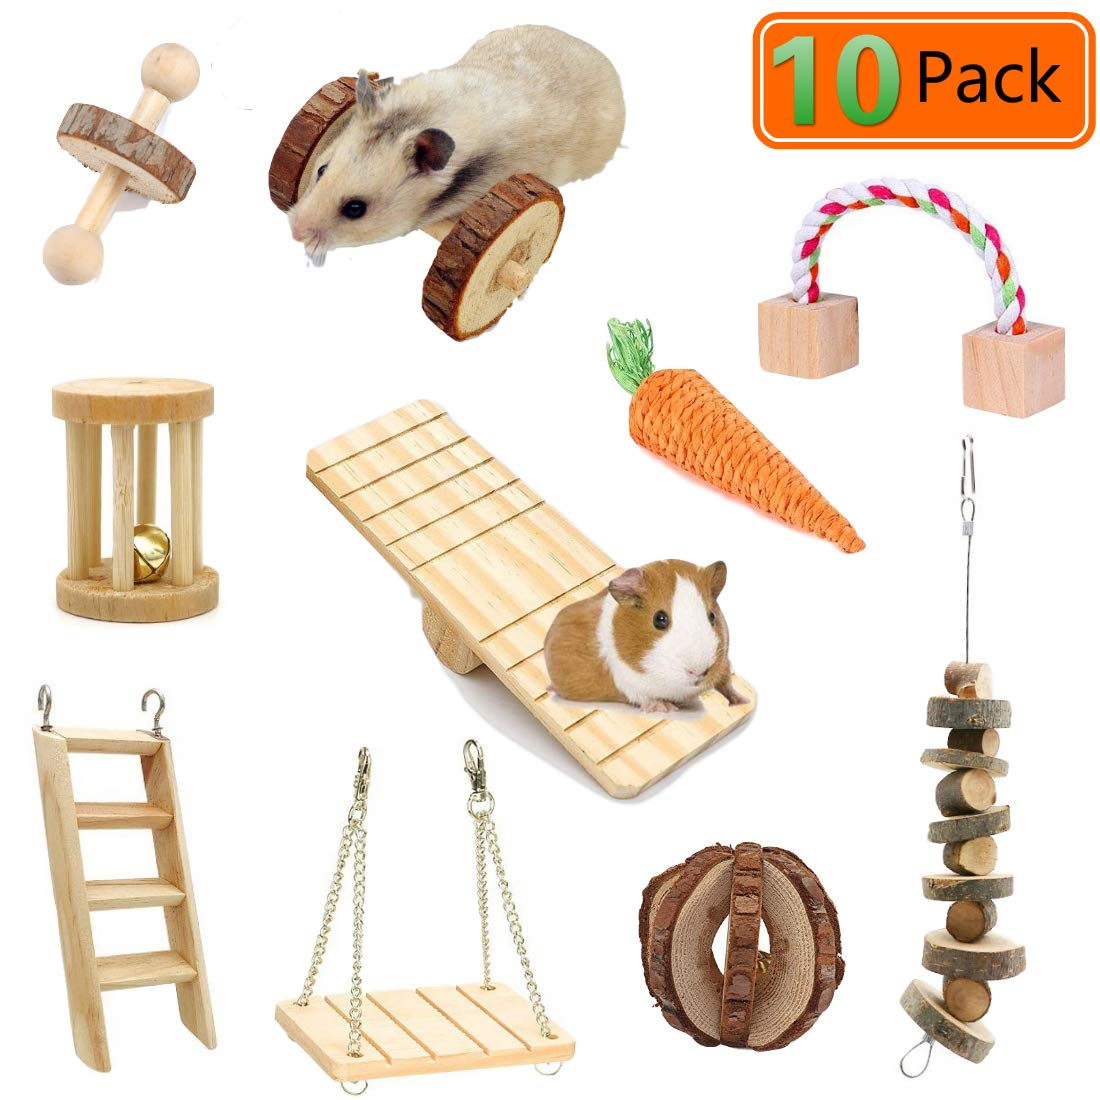 JEMPET Hamster Chew Toys, Natural Wooden Pine Guinea Pigs Rats Chinchillas Toys Accessories, Dumbbells Exercise Ball Roller Teeth Care Molar Toy for Birds Bunny Rabbits Gerbils (10 Pack) by JEMPET